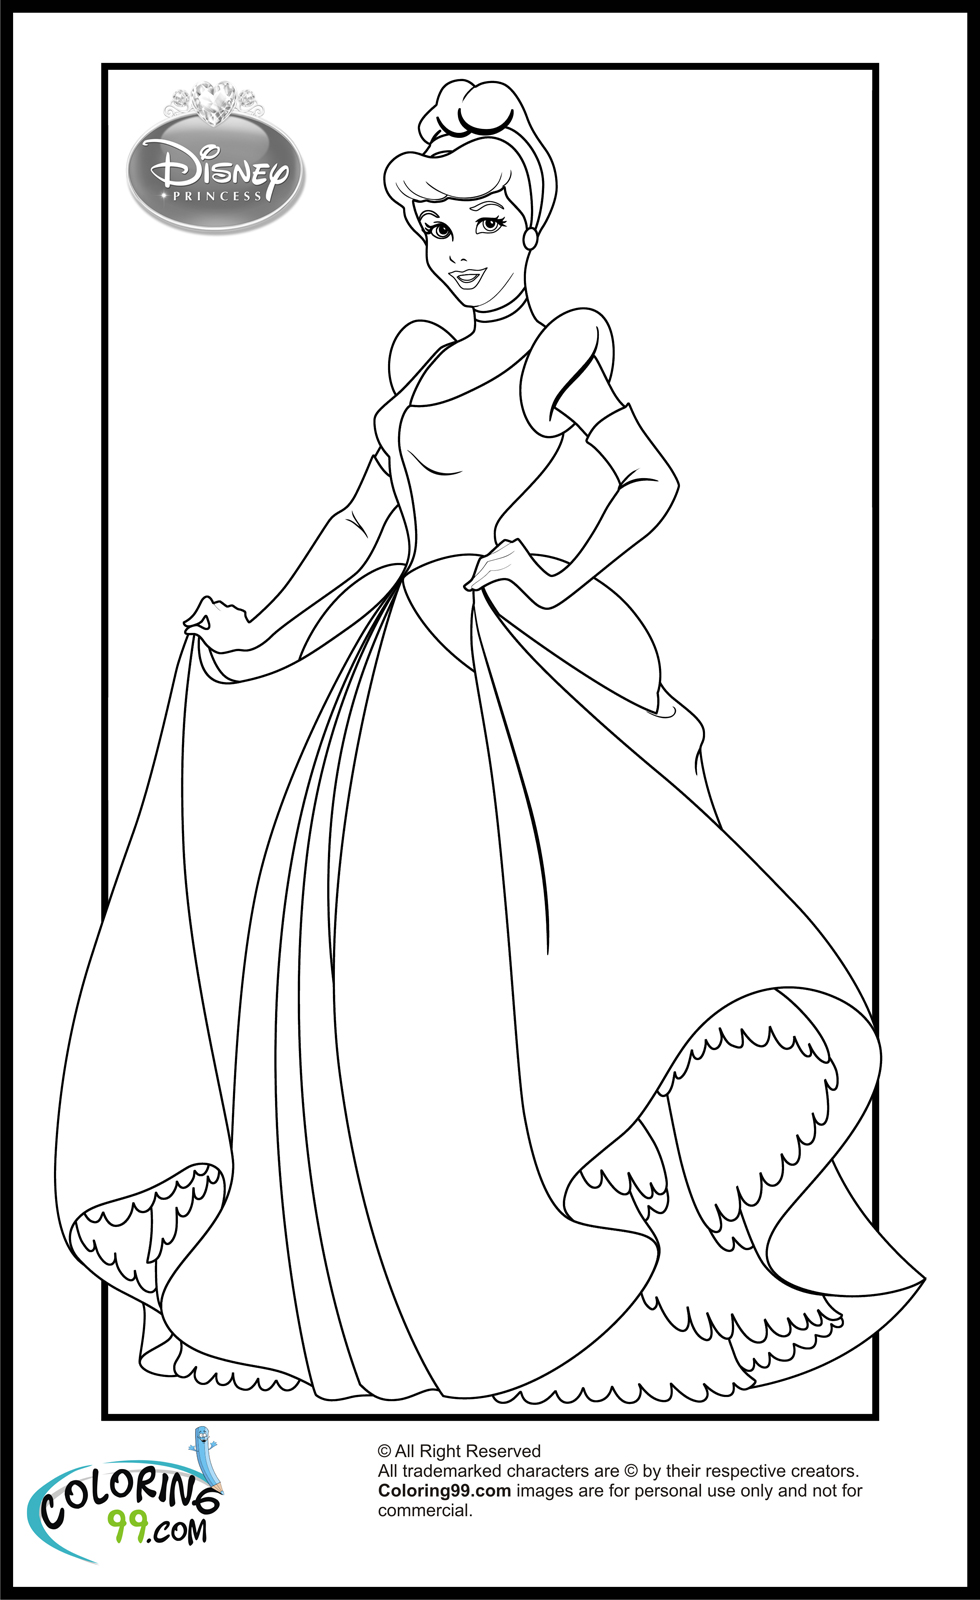 cinderella coloring pages to print coloring pages cinderella free printable coloring pages cinderella print coloring to pages